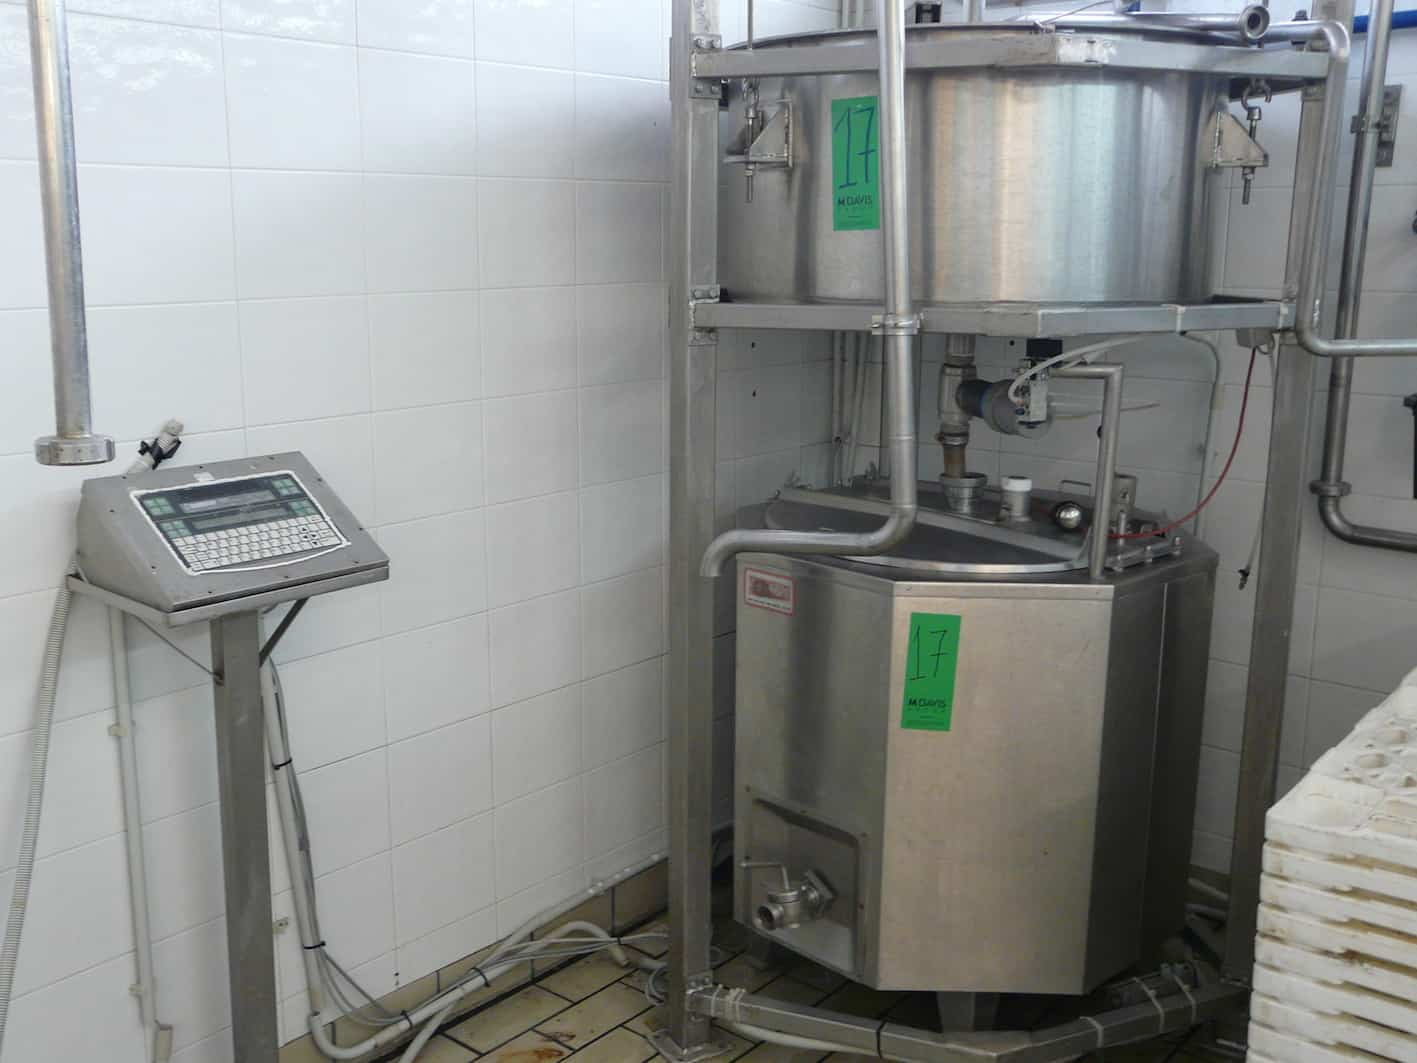 Measuring Tank Made By GEA NIRO HELLAS 150KG with Tank 300L, Y.O.M.: 2003 with Scales and Display